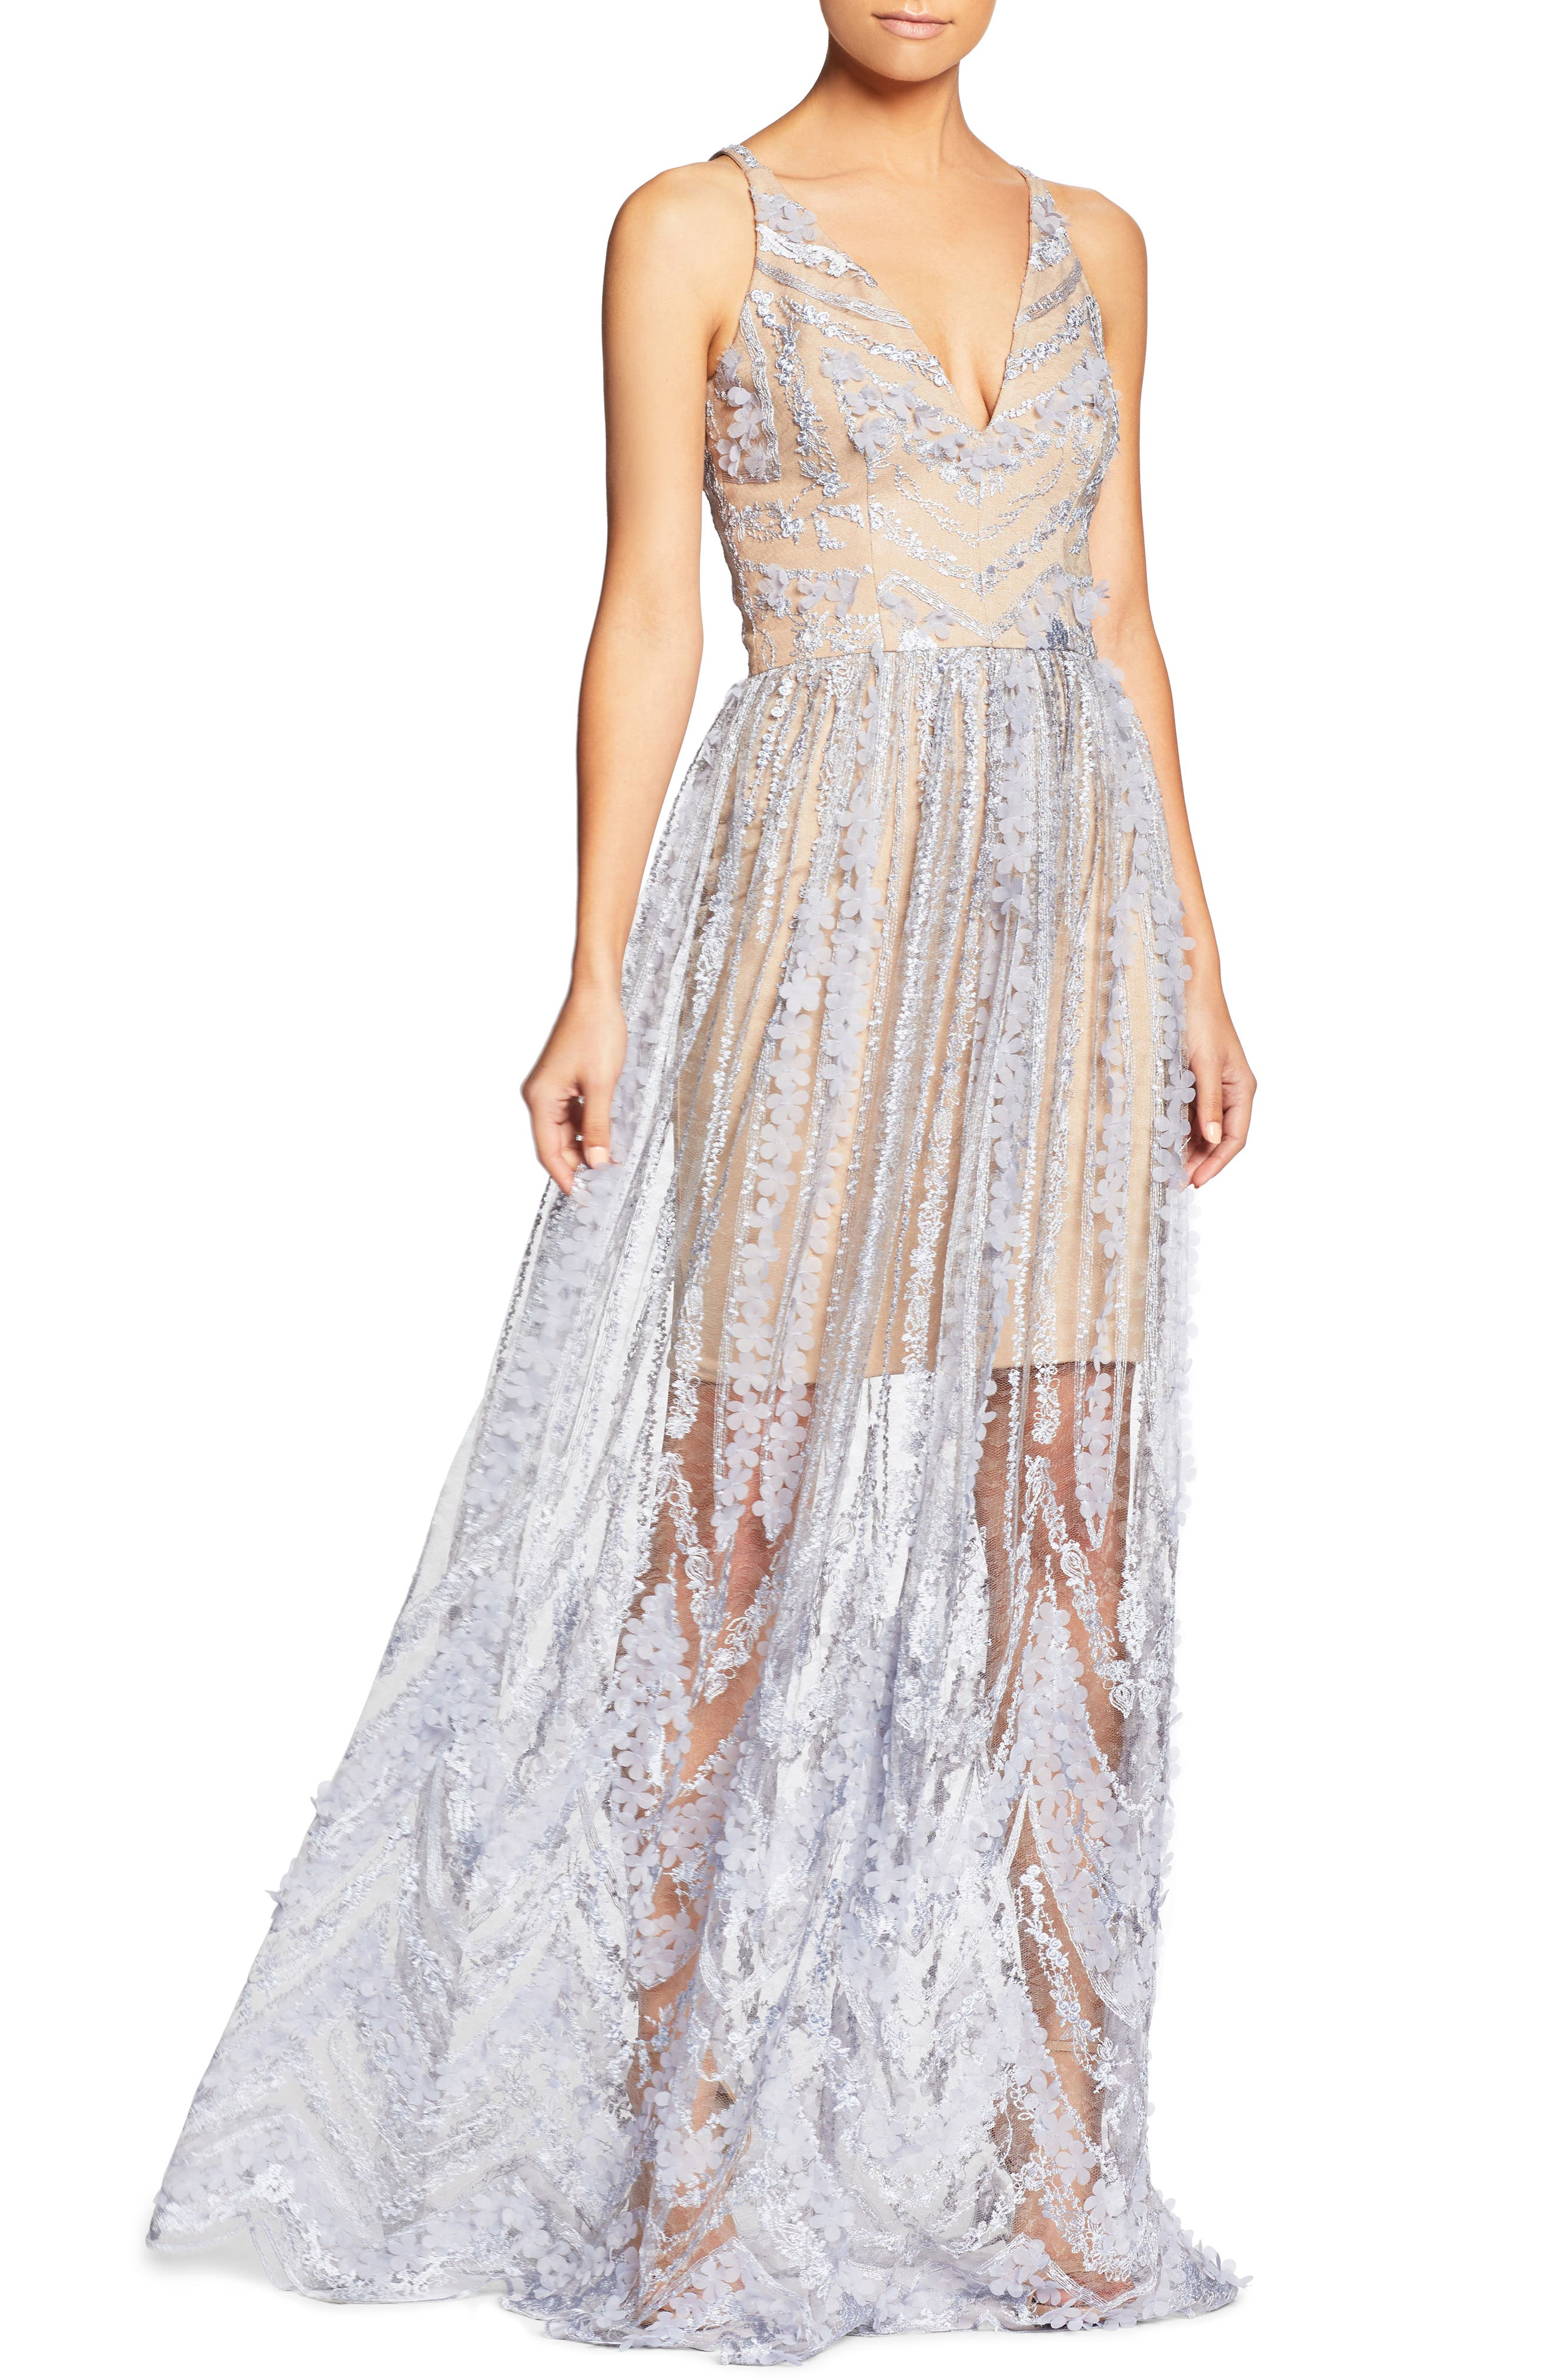 Chelsea Lace A-Line Gown,                         Main,                         color, Mineral Blue/ Nude